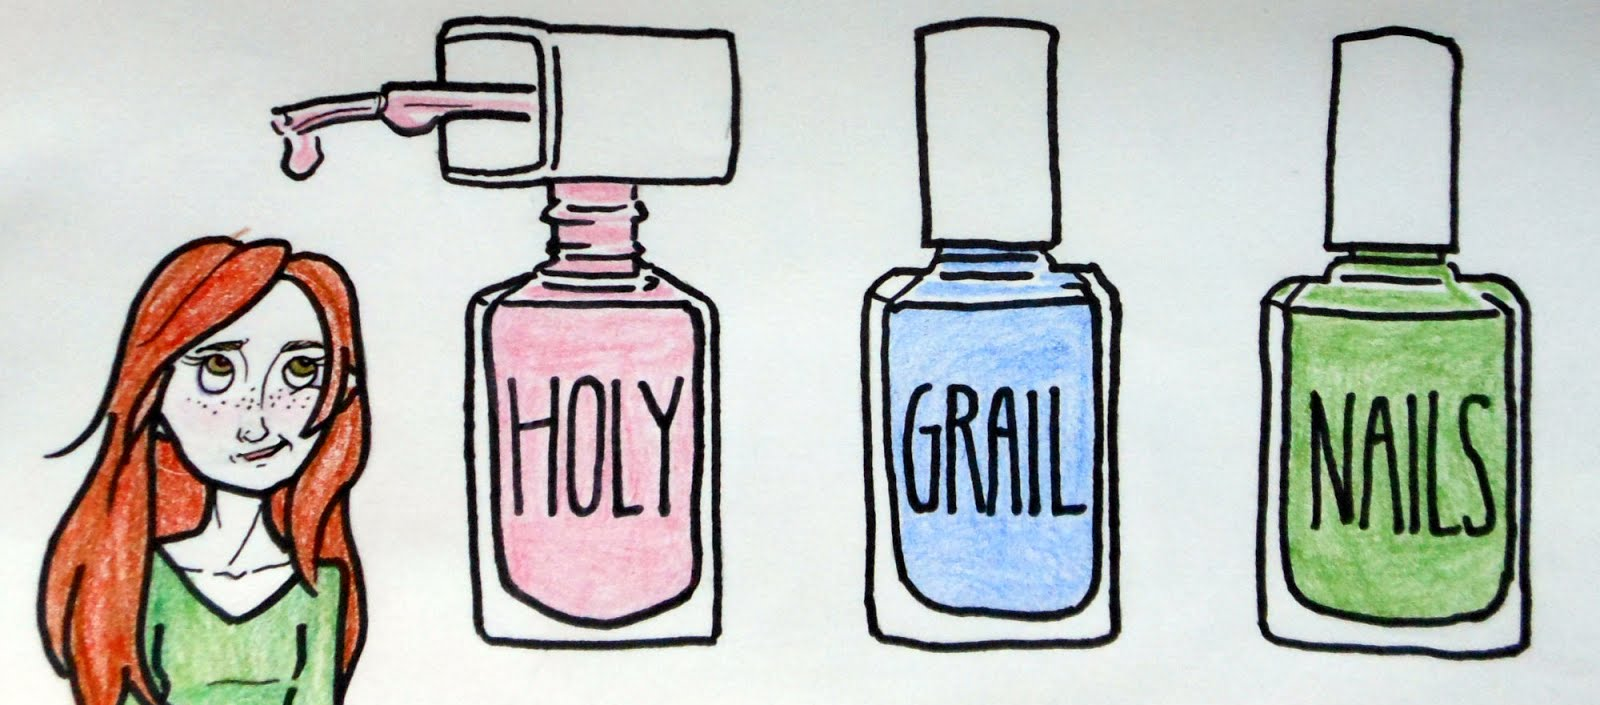 Holy Grail Nails